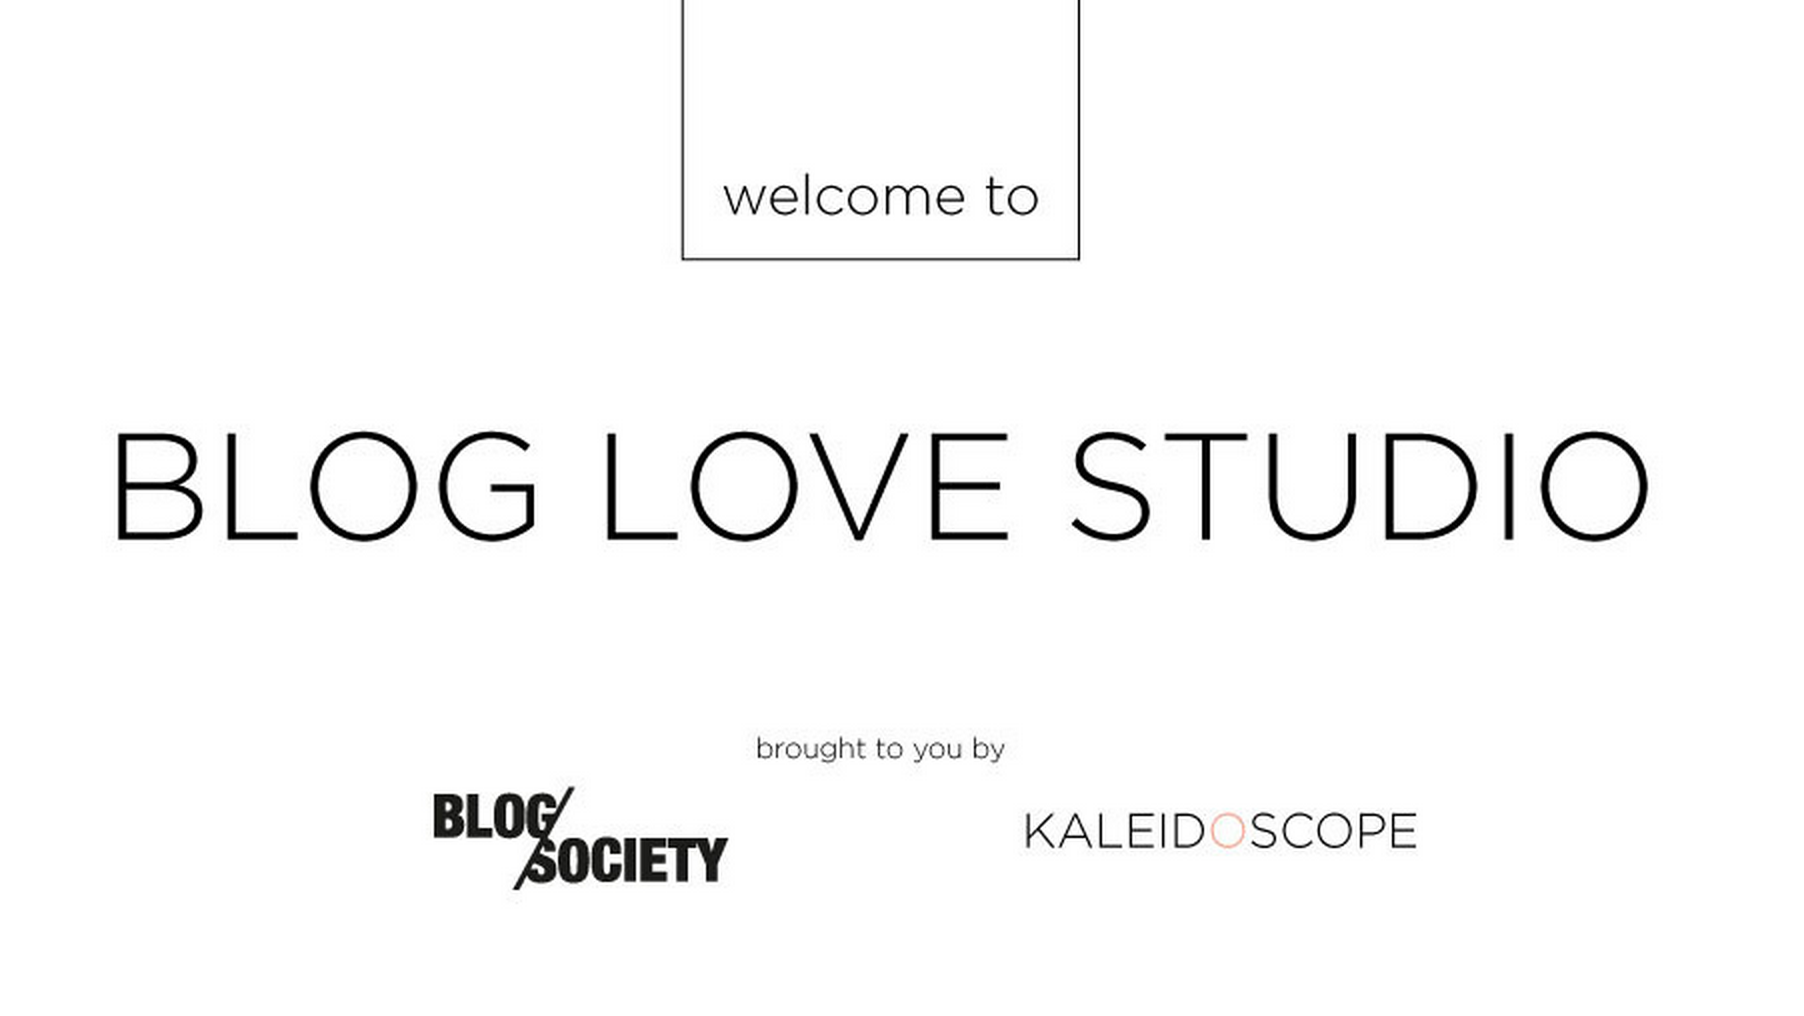 Blog Love Studio